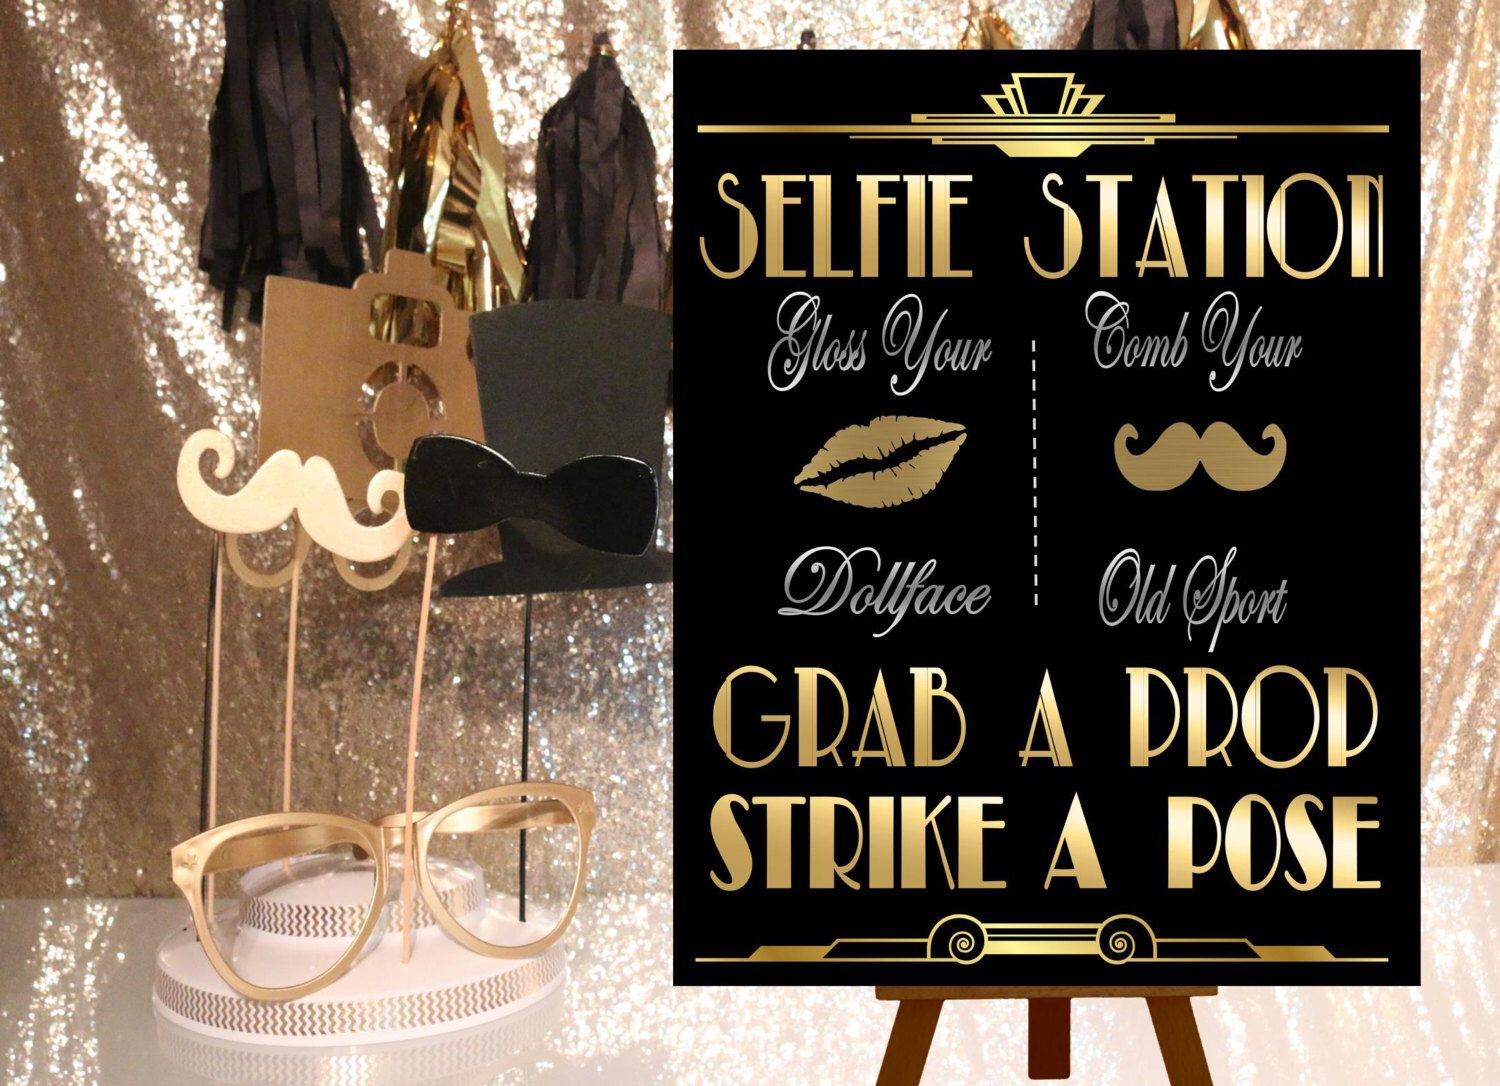 Art deco backdrop for photos wall decor party decoration 1920 s - Printable Selfie Station Photobooth Sign Gatsby Party Decoration 3 Sizes Roaring 20s